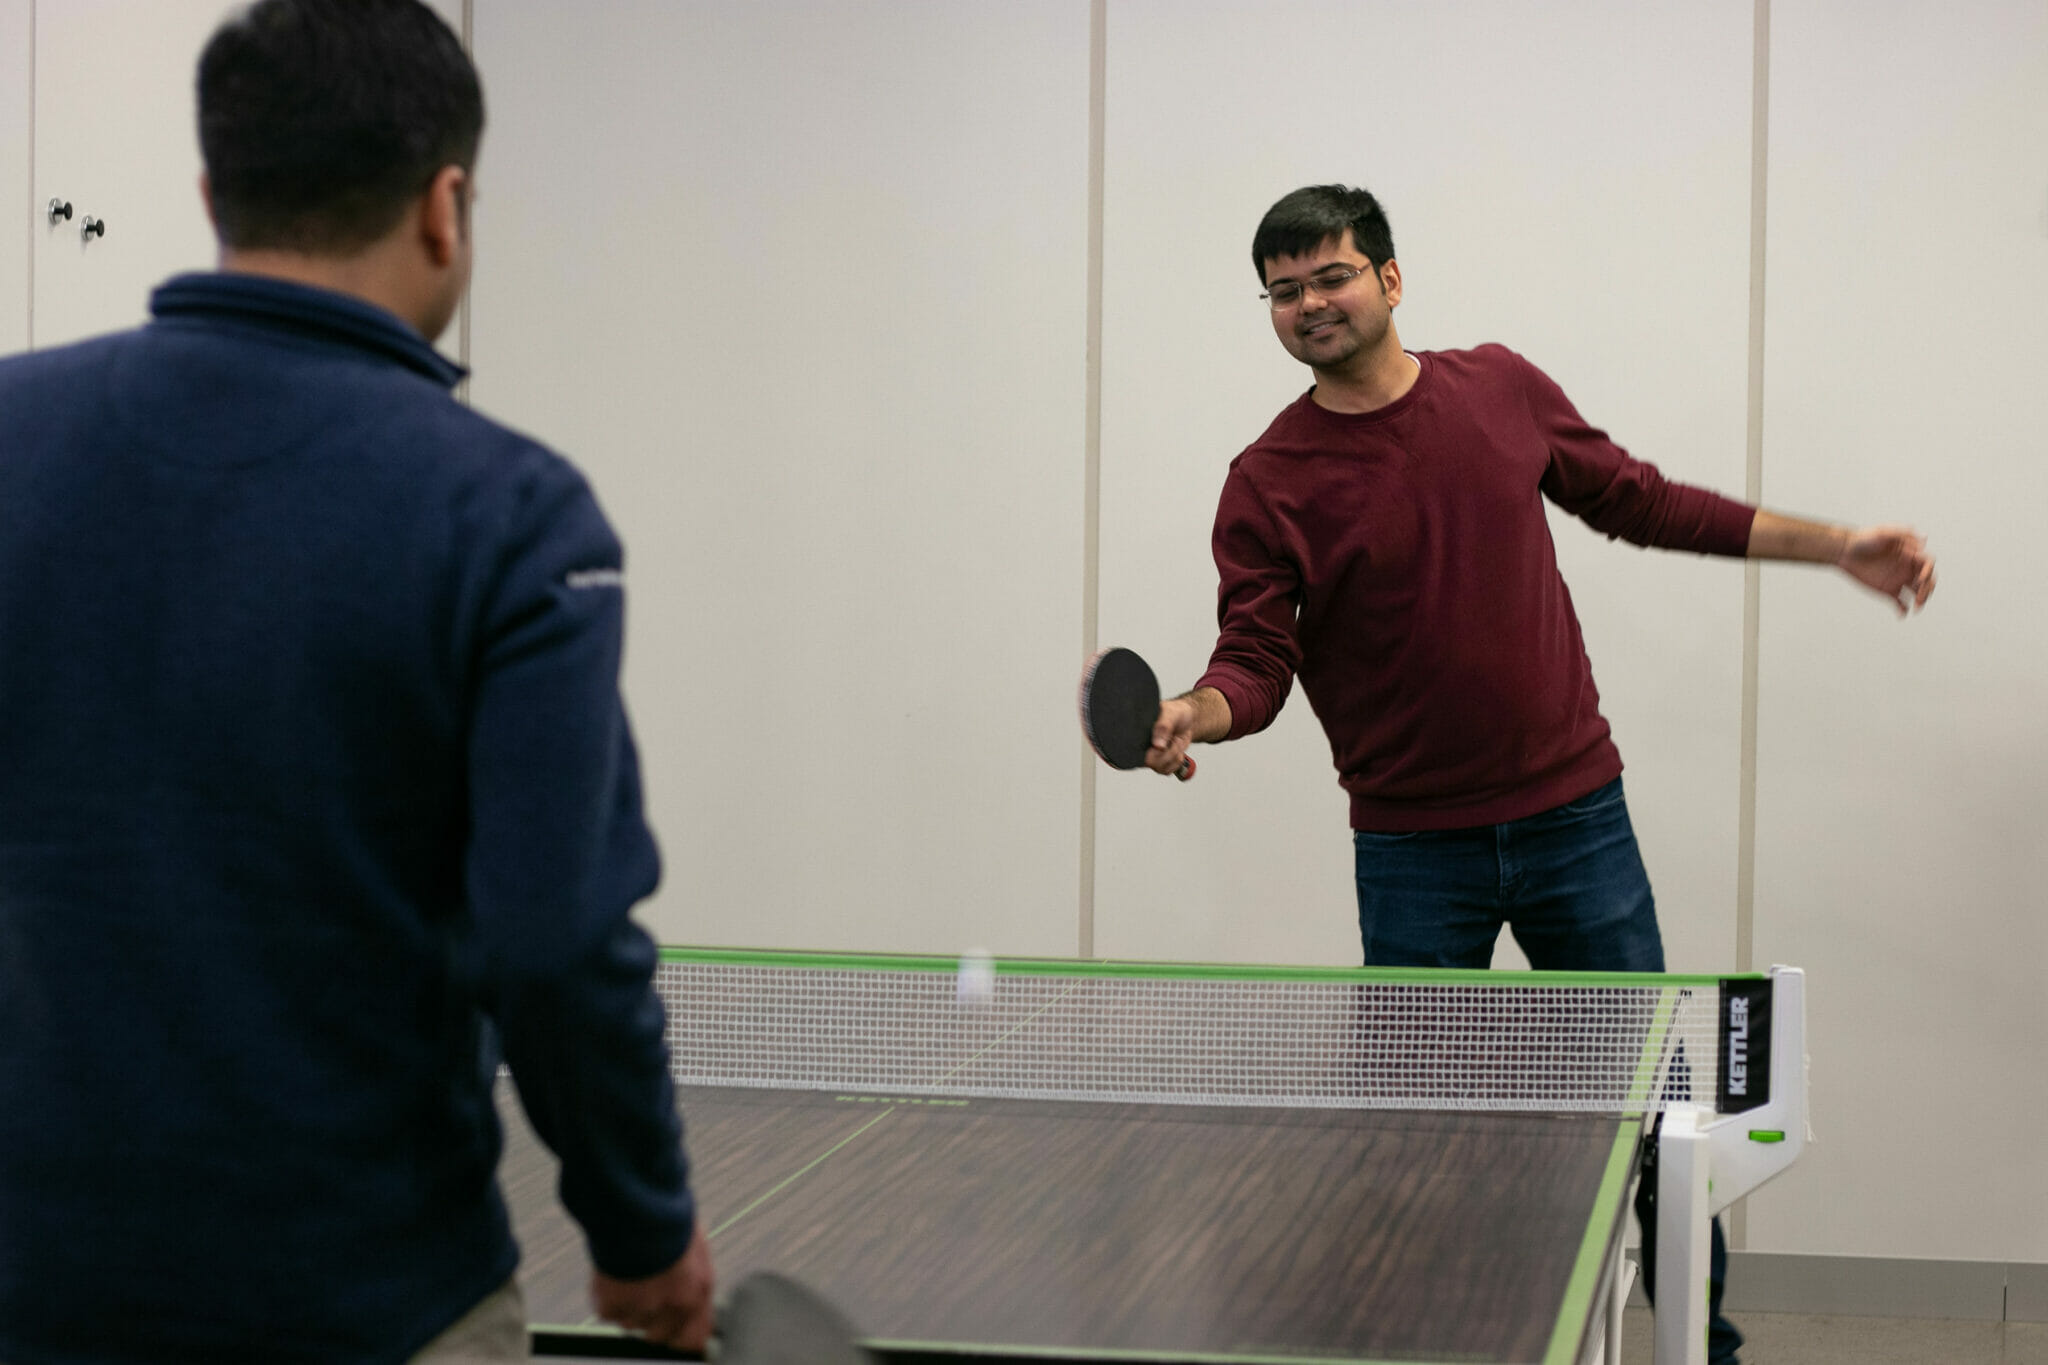 Employees playing ping pong in the office